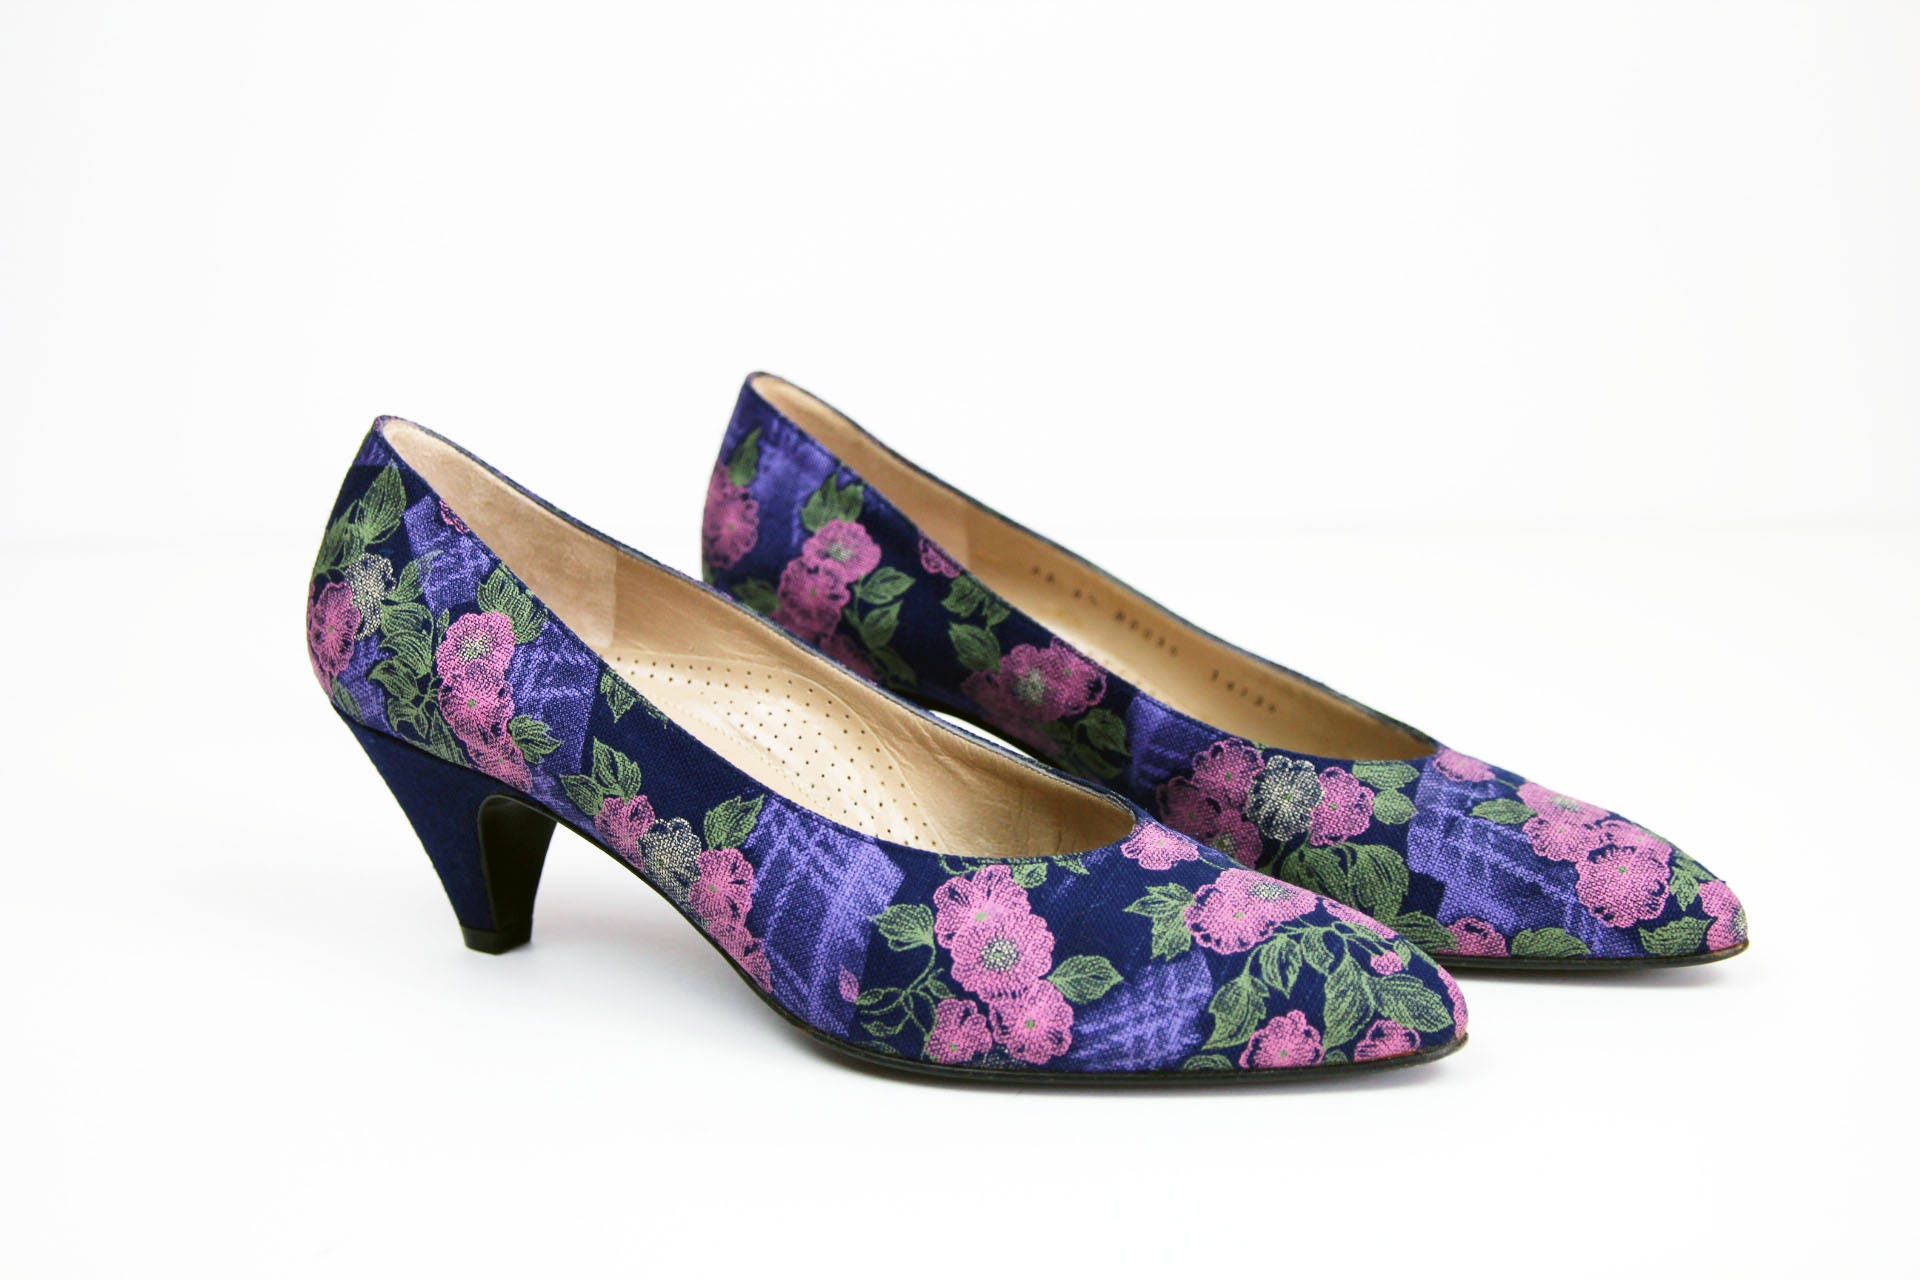 3bd5be2f2d3ec BRUNO MAGLI Floral Pumps + Size 8.5 AA Narrow + Vintage 80s Navy Blue Heels  + Flower Print Heels + Pink Purple Cream Green + Pointed Toe +